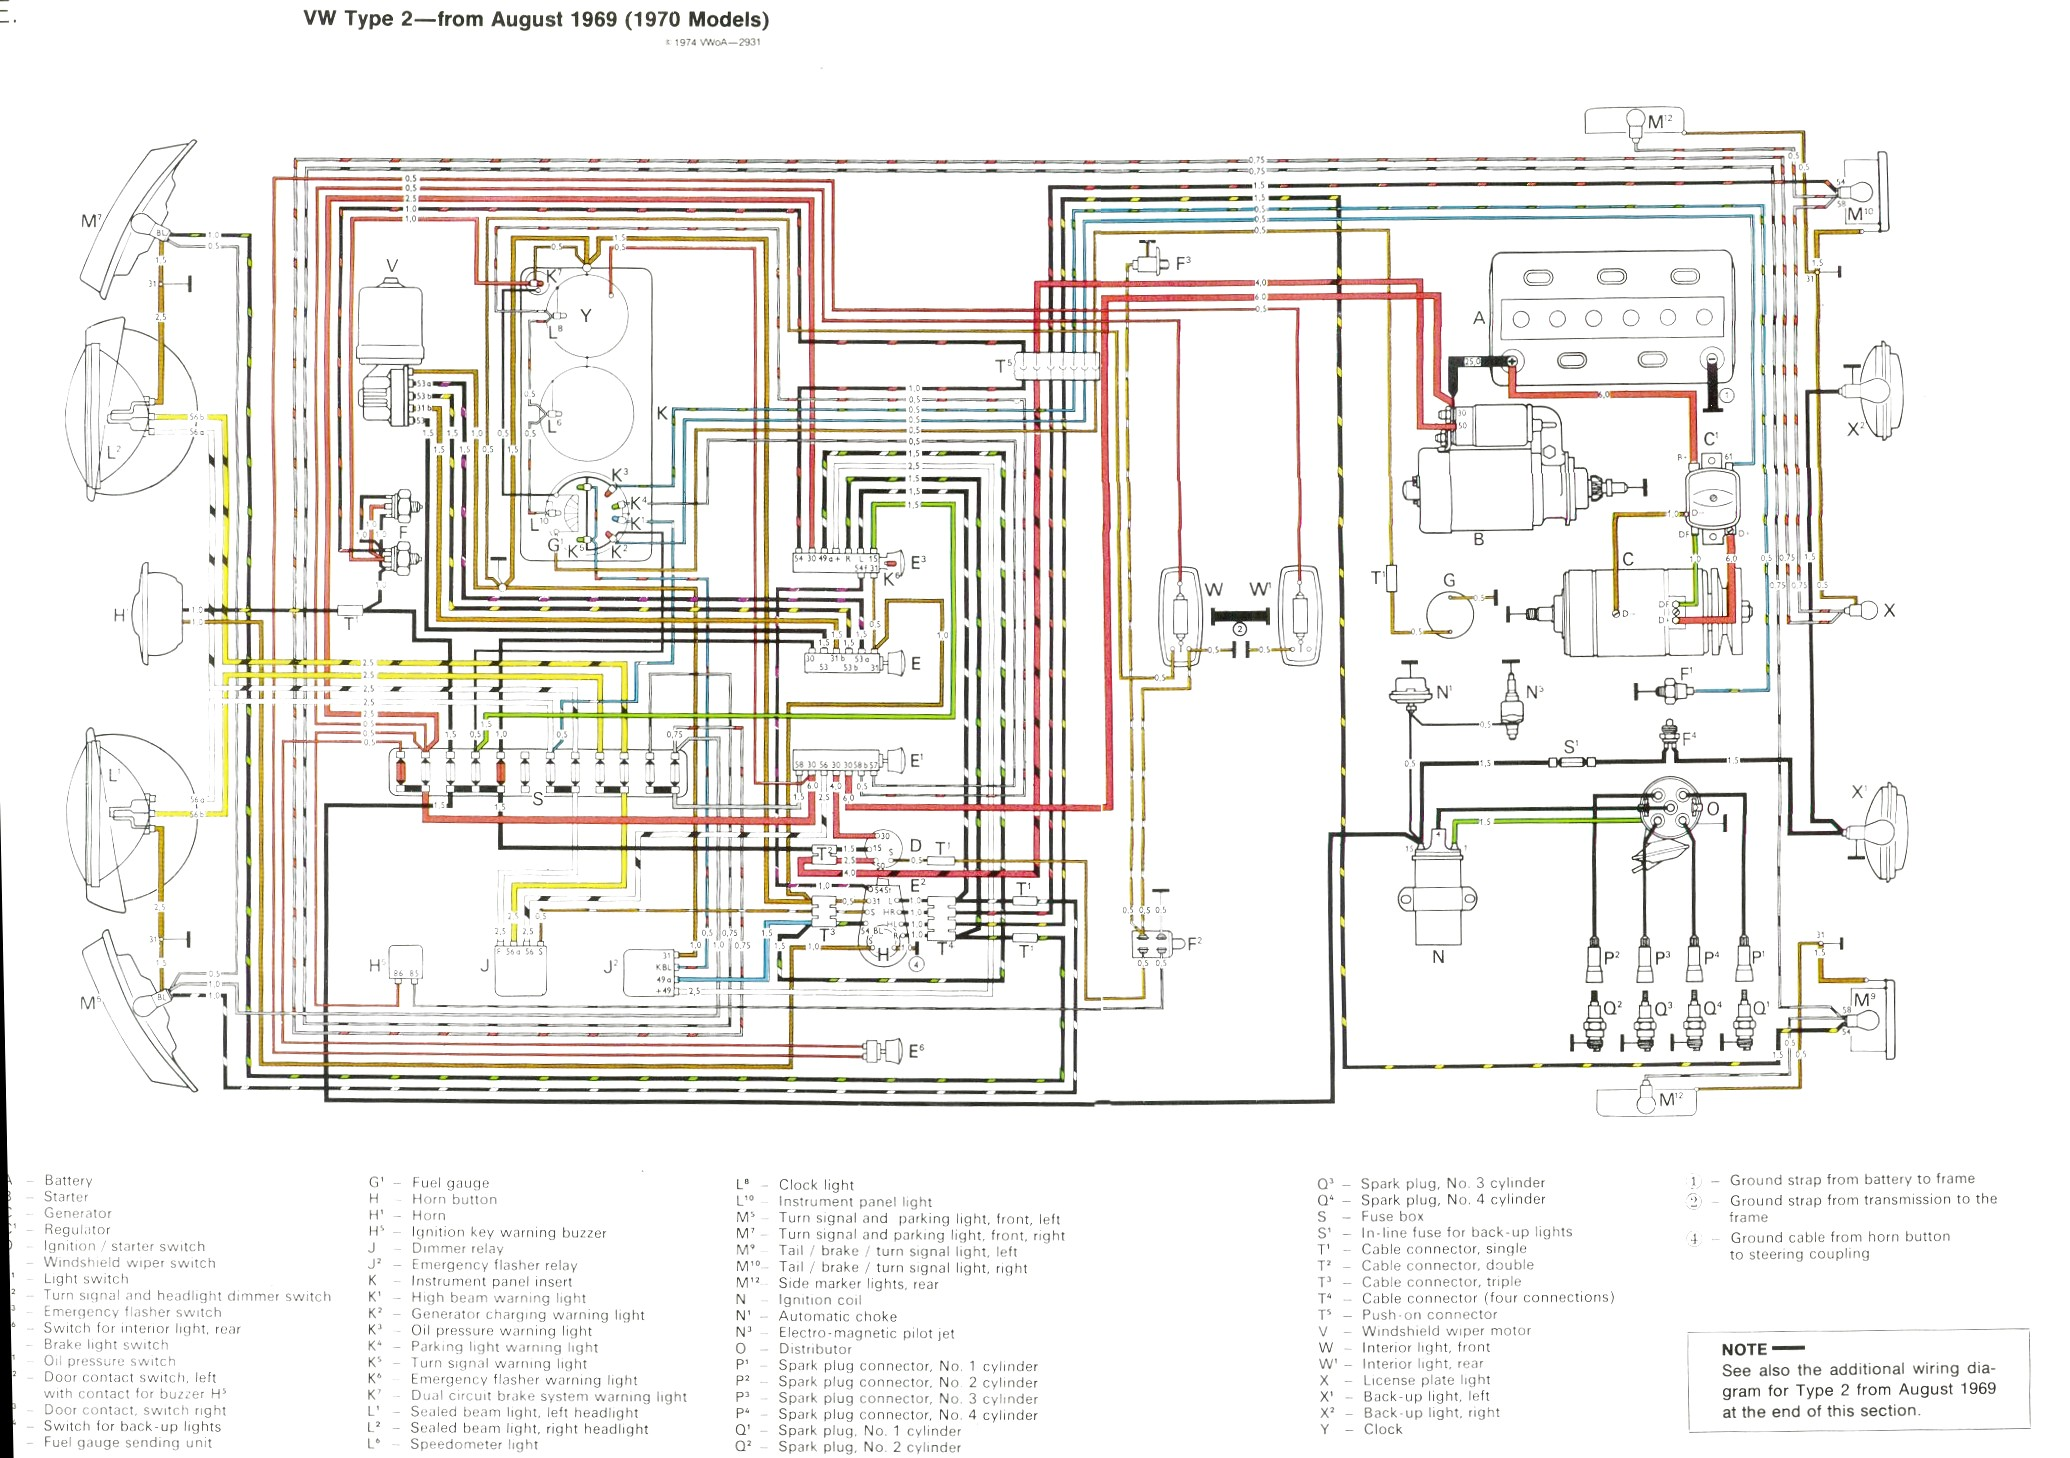 AX_9797] Vw Bus Wiring Diagram Moreover Vw Bus Wiring Diagram On 1969 Vw  Free DiagramGue45 Sapebe Mohammedshrine Librar Wiring 101